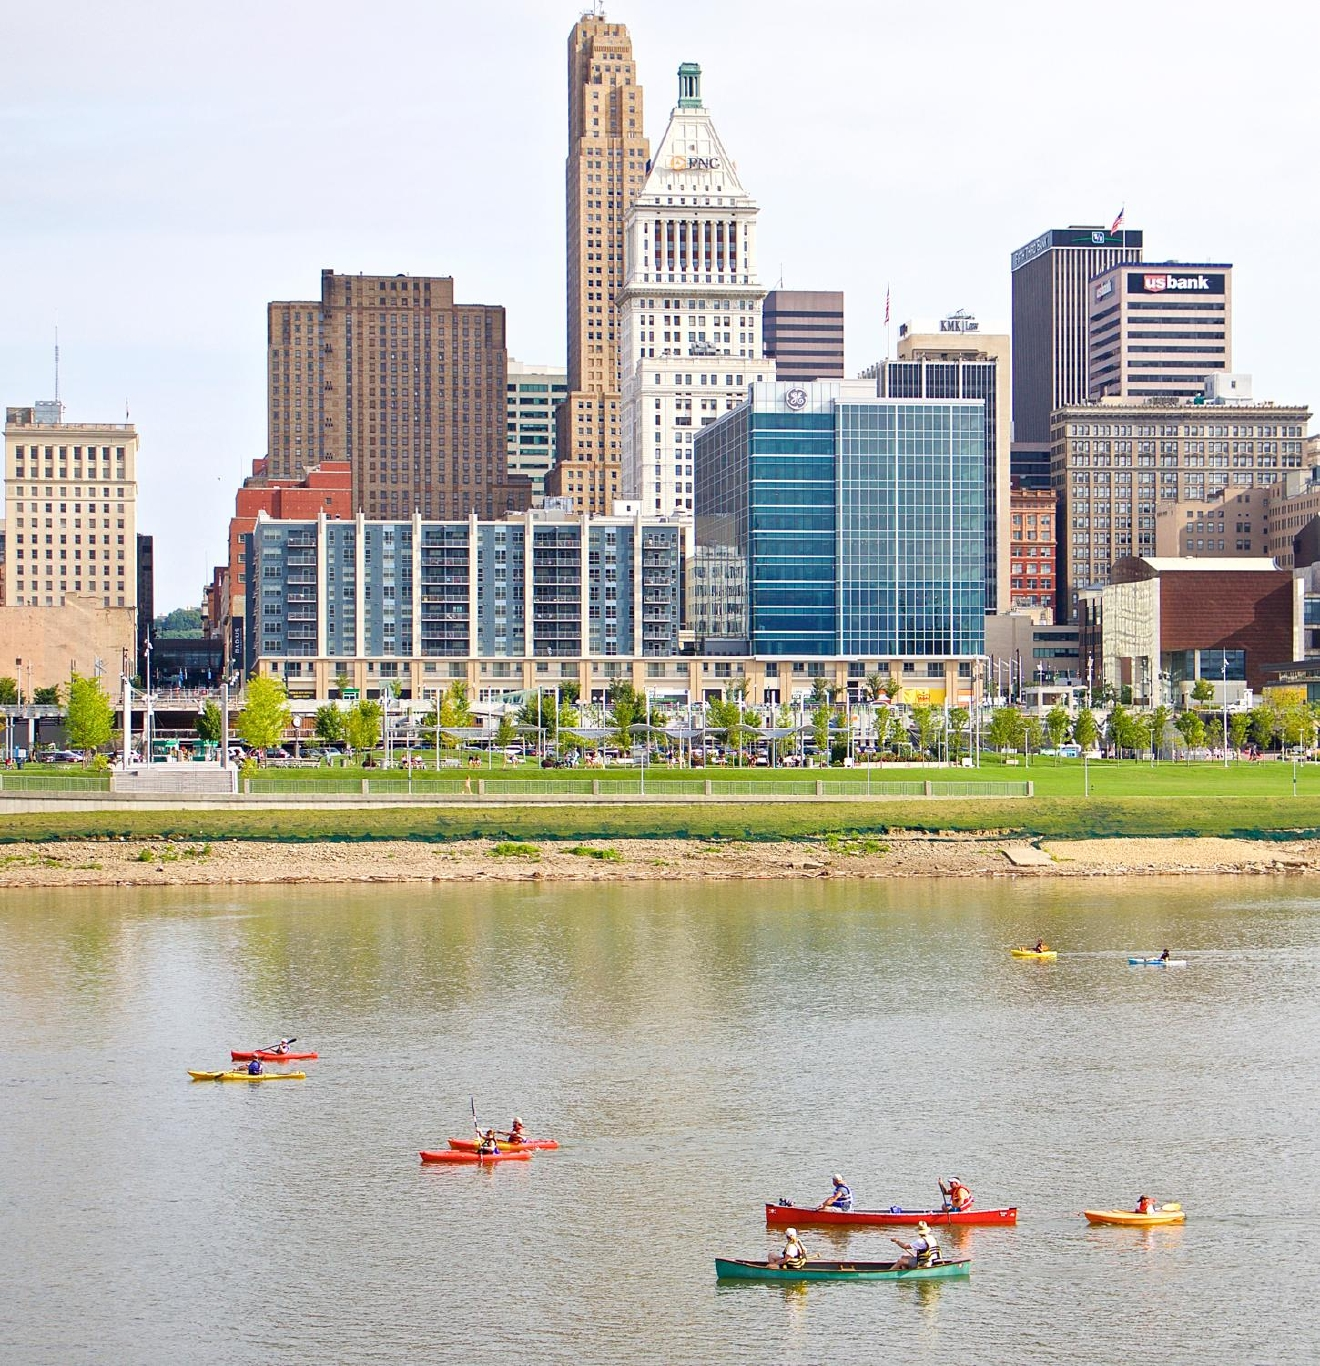 Ohio River Paddlefest took place on Saturday, August 6. / Image: Dr. Richard Sanders